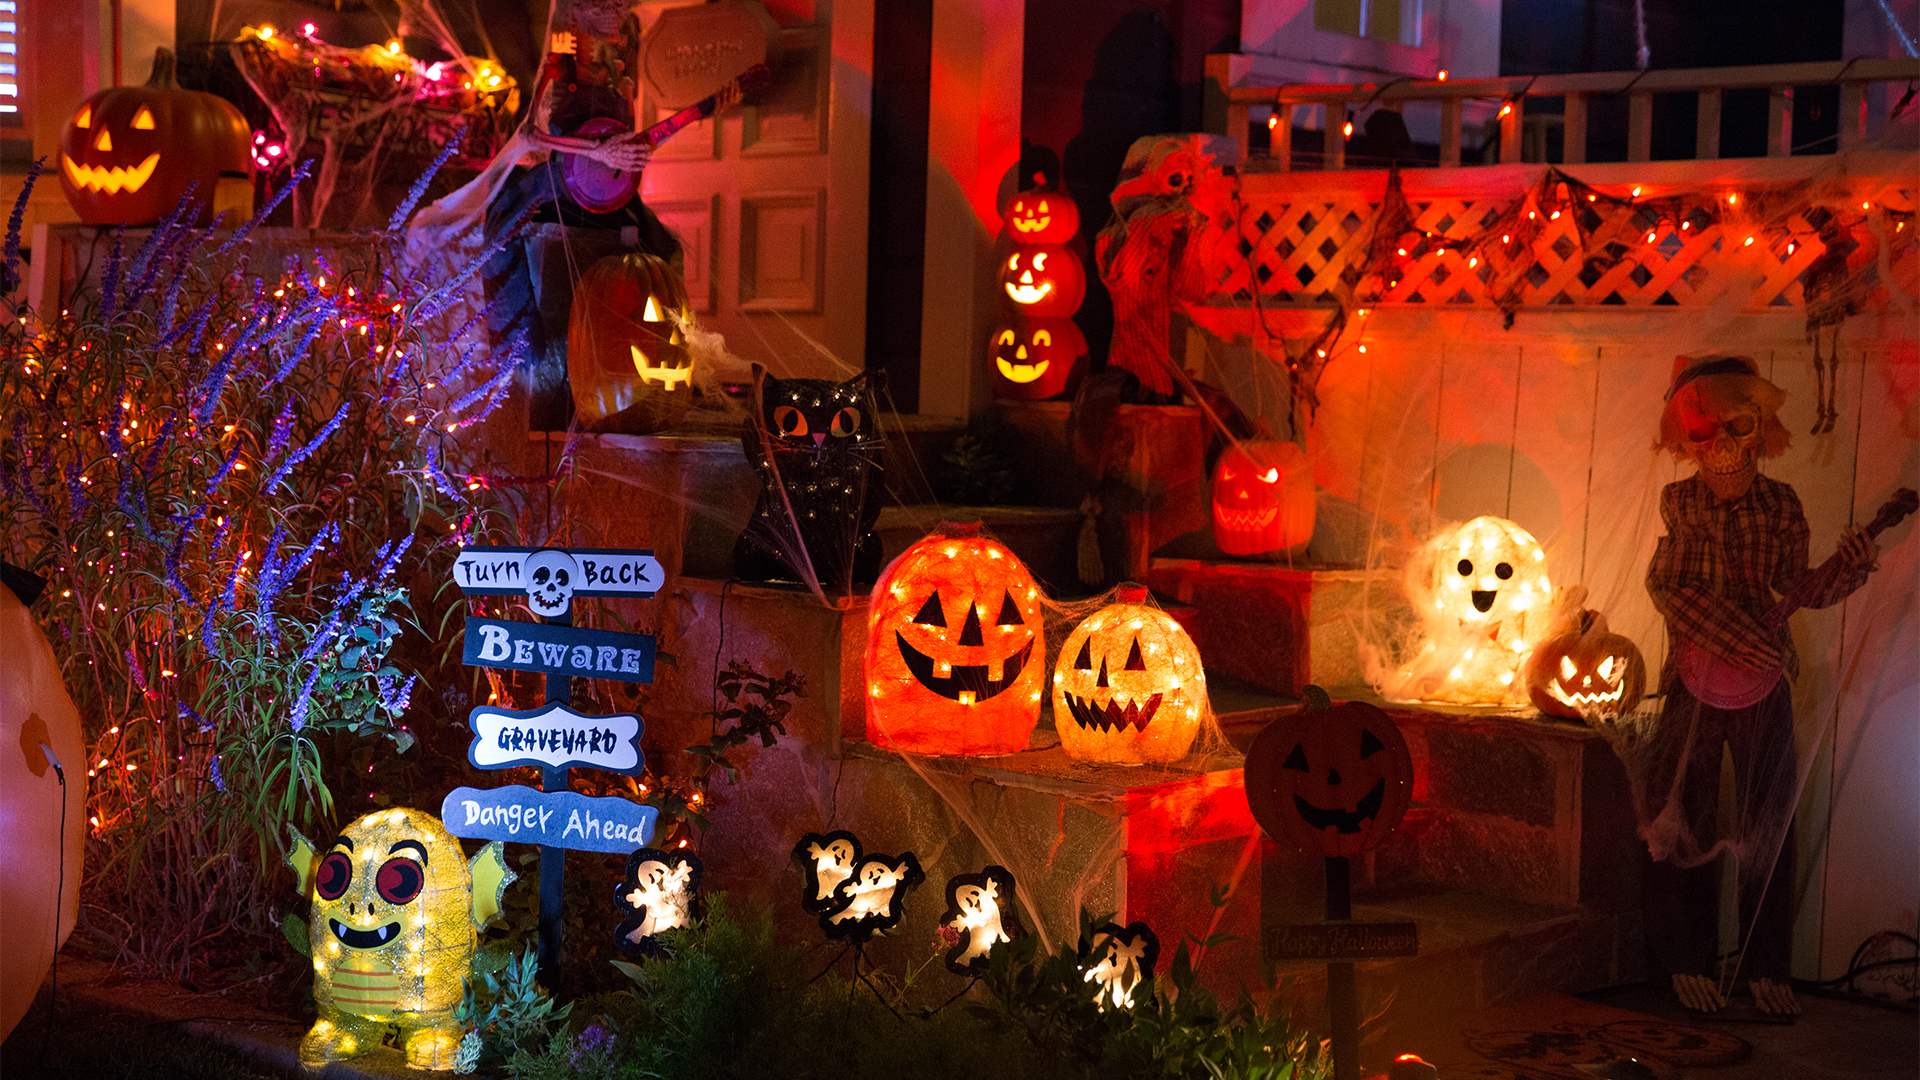 Halloween 2020 -Youtube Halloween 2020: List of local events | WFLA